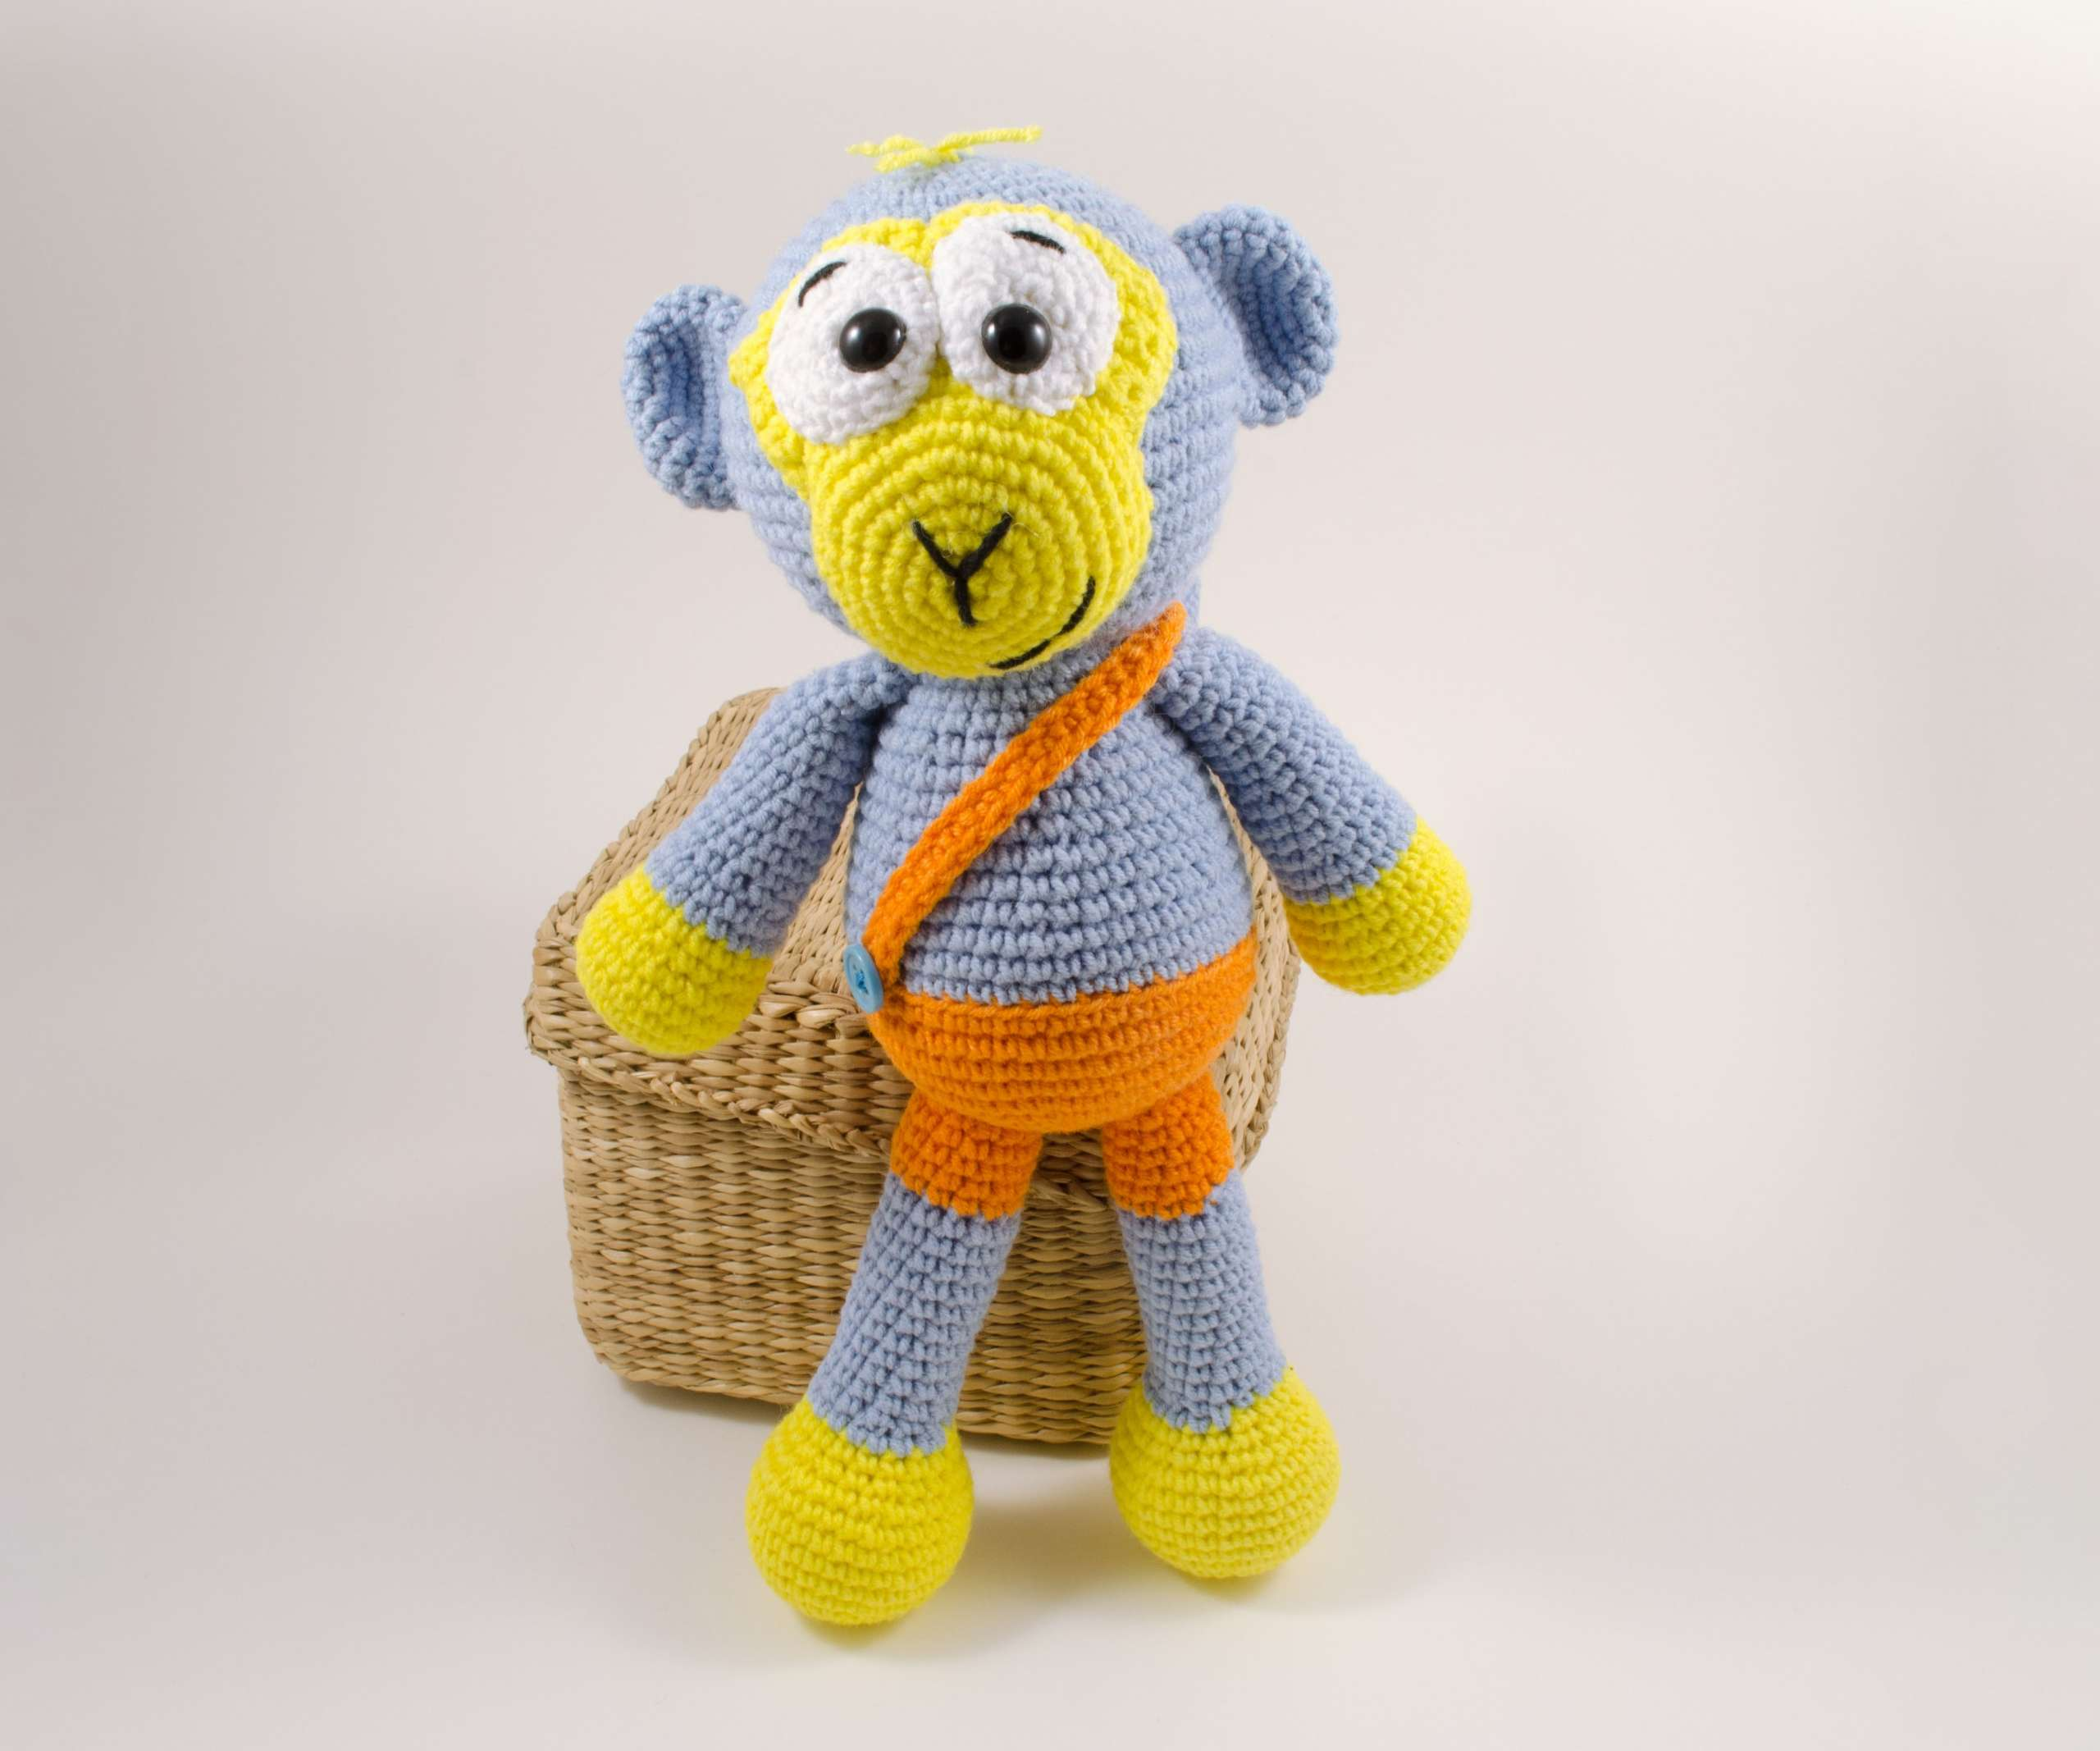 amigurumi blue monkey front view